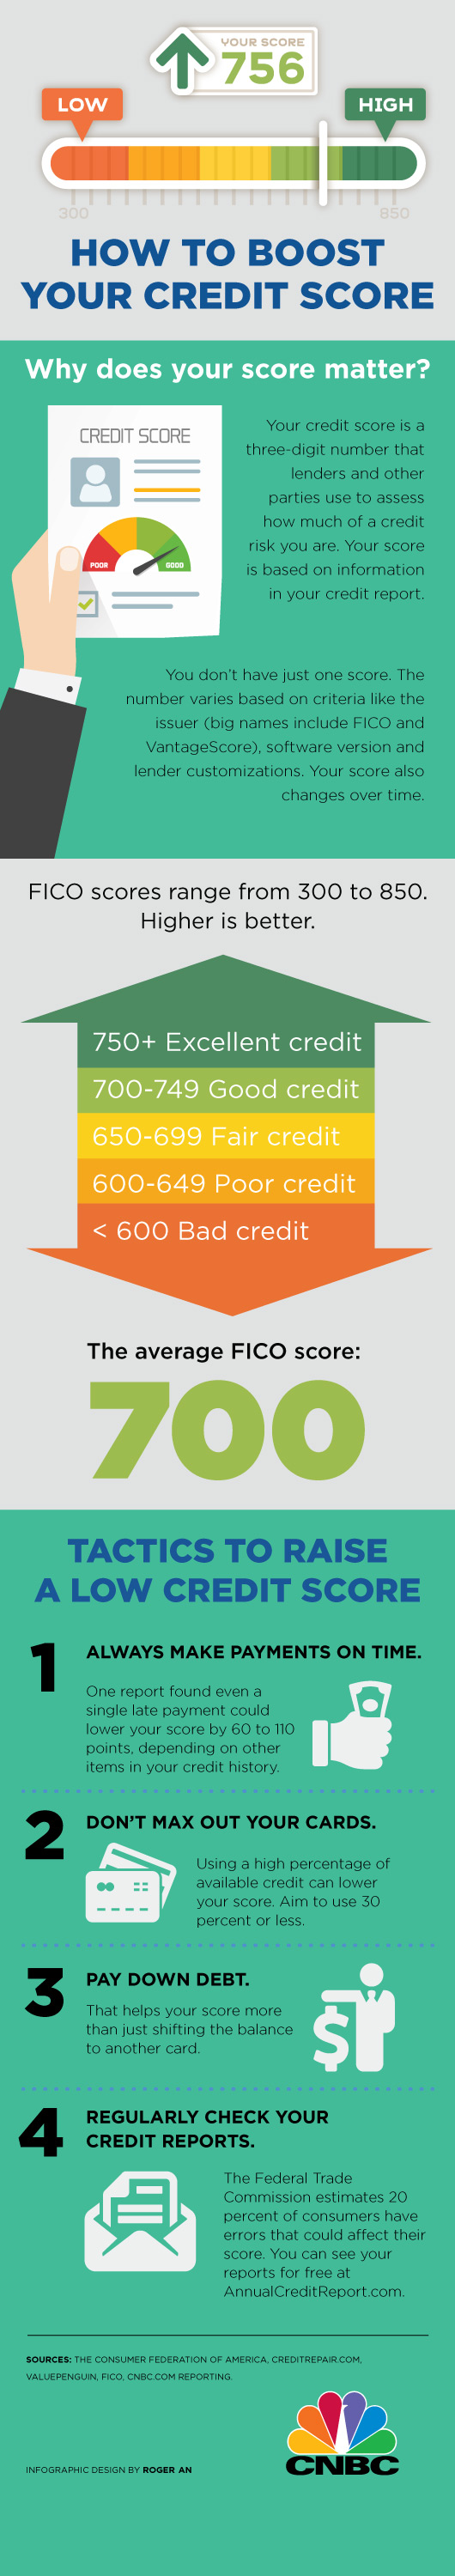 FICO Scorehits all time high